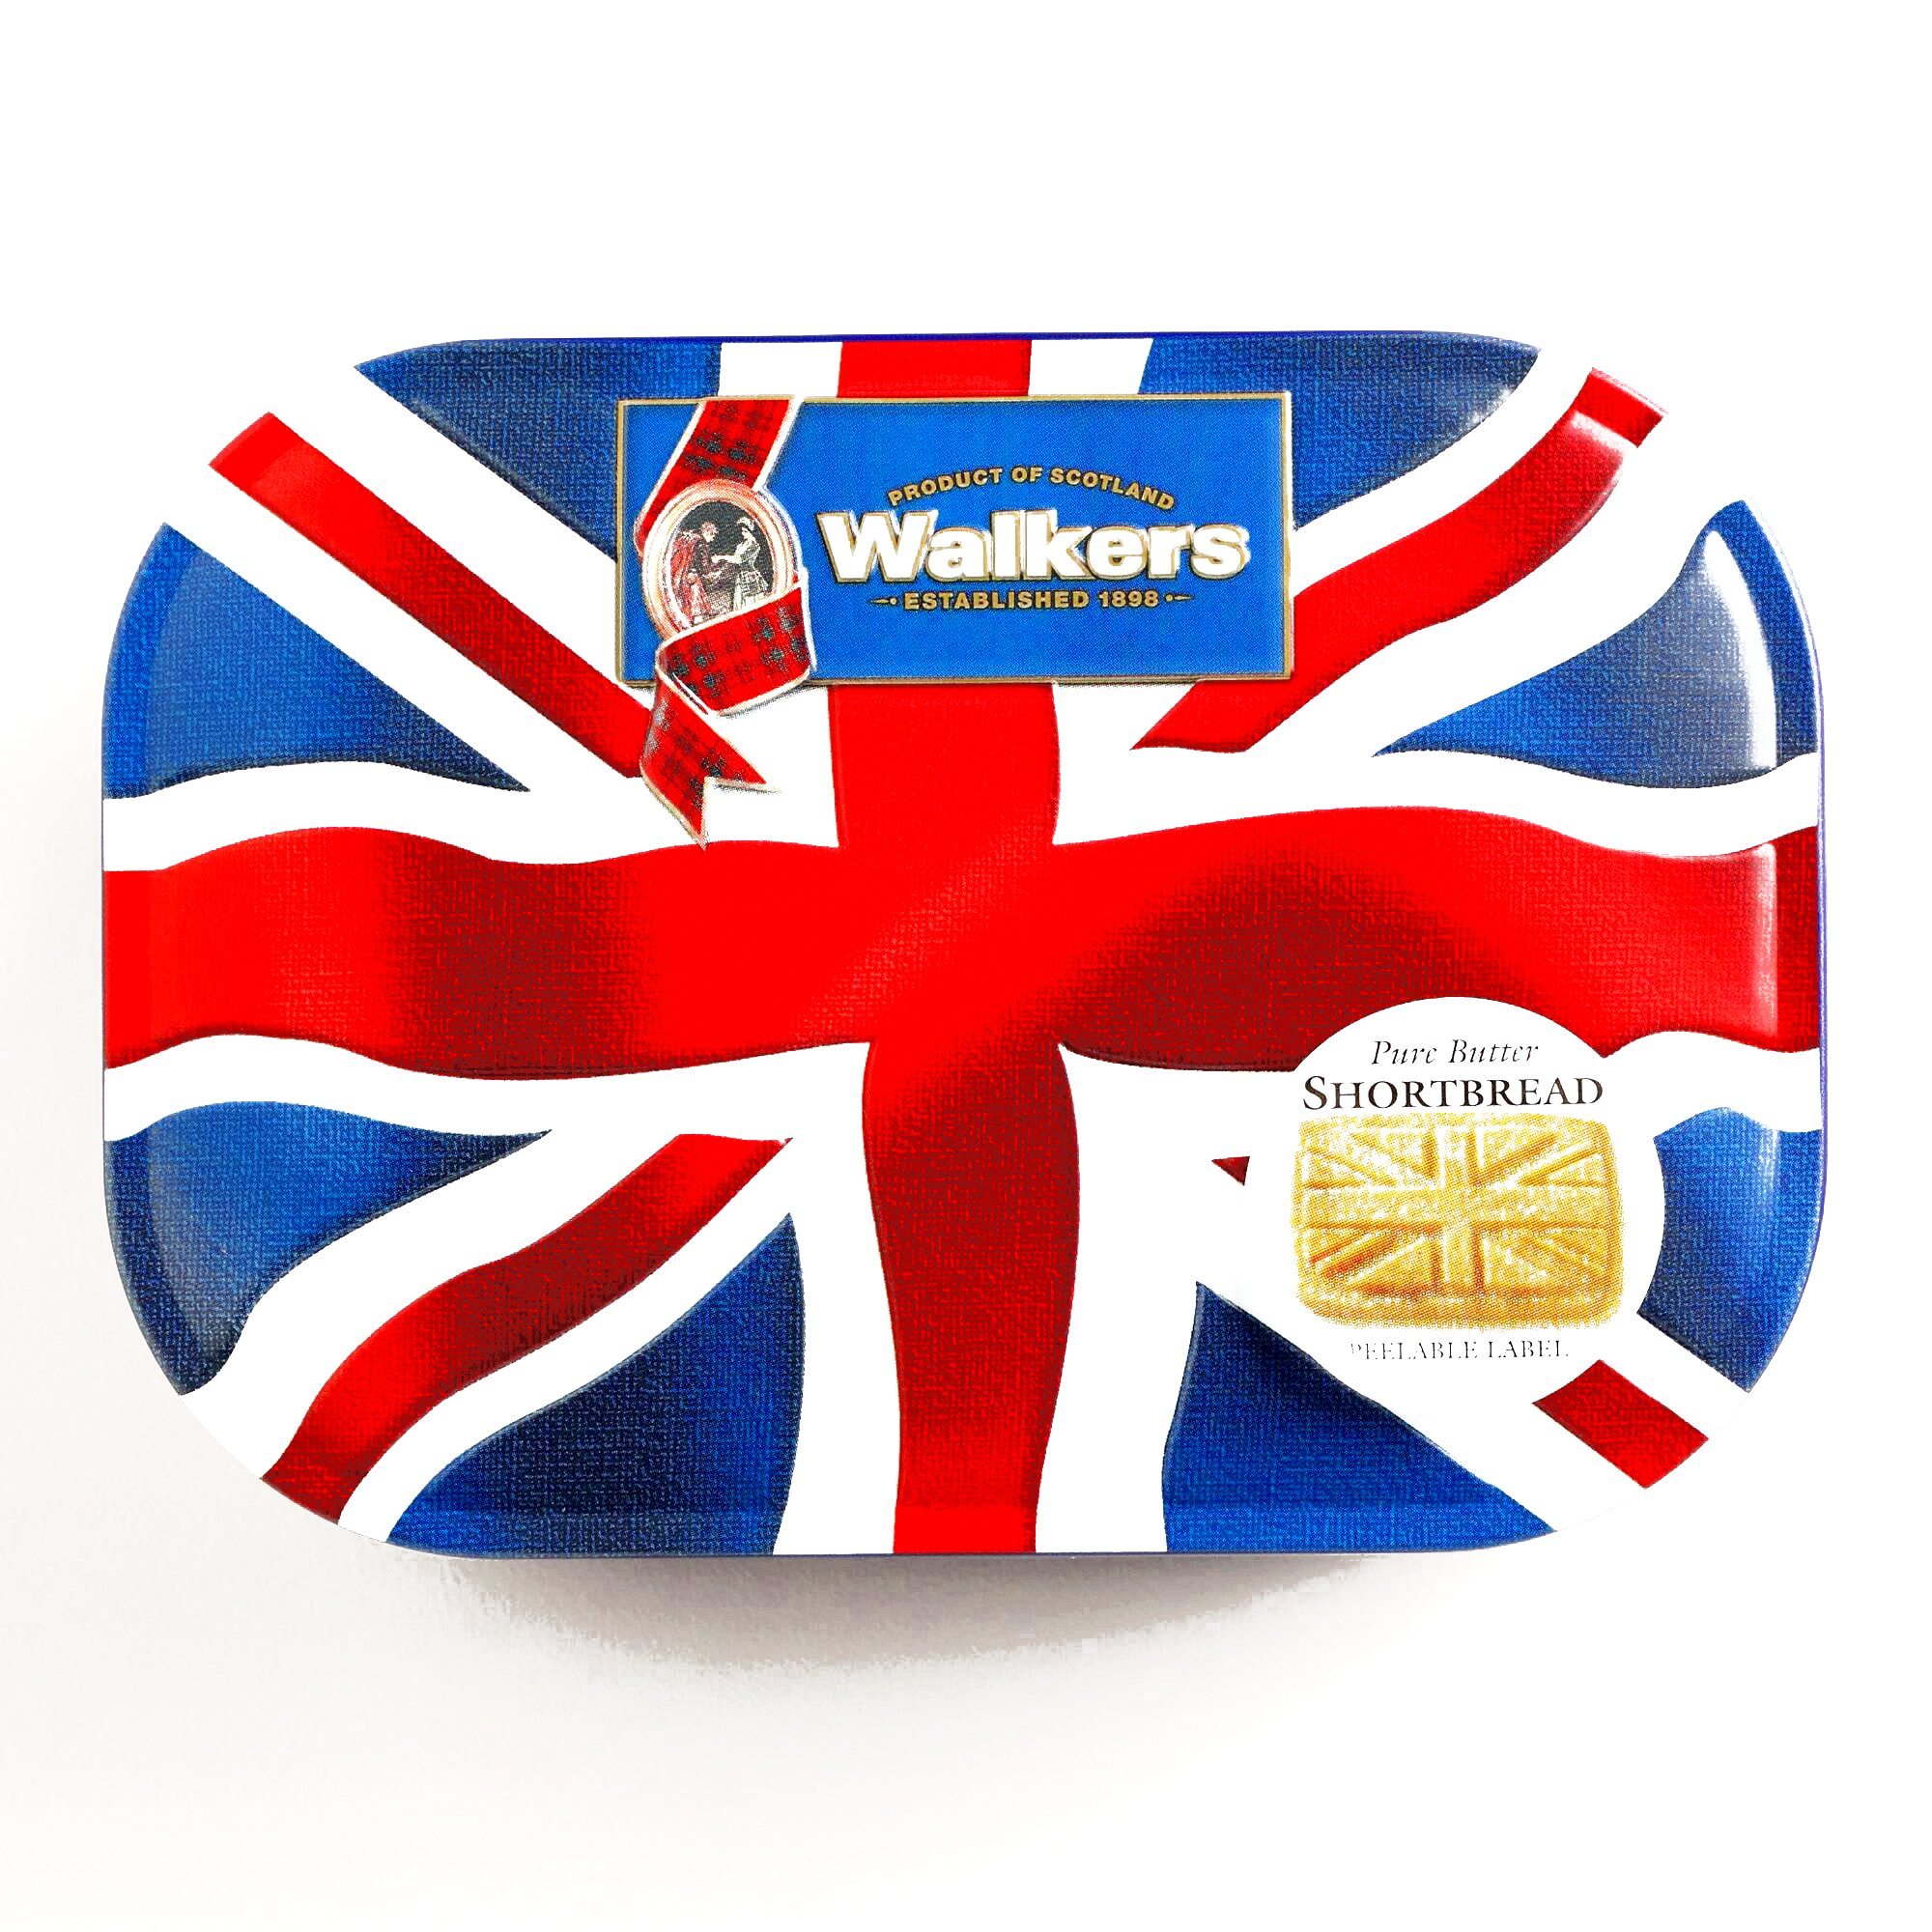 Walkers Shortbread Union Jack Cookie Tin 4.2 ounce each, Traditional Butter Shortbread Cookies from the Scottish Highlands, Quality Ingredients, No Artificial Flavors by Walkers Shortbread